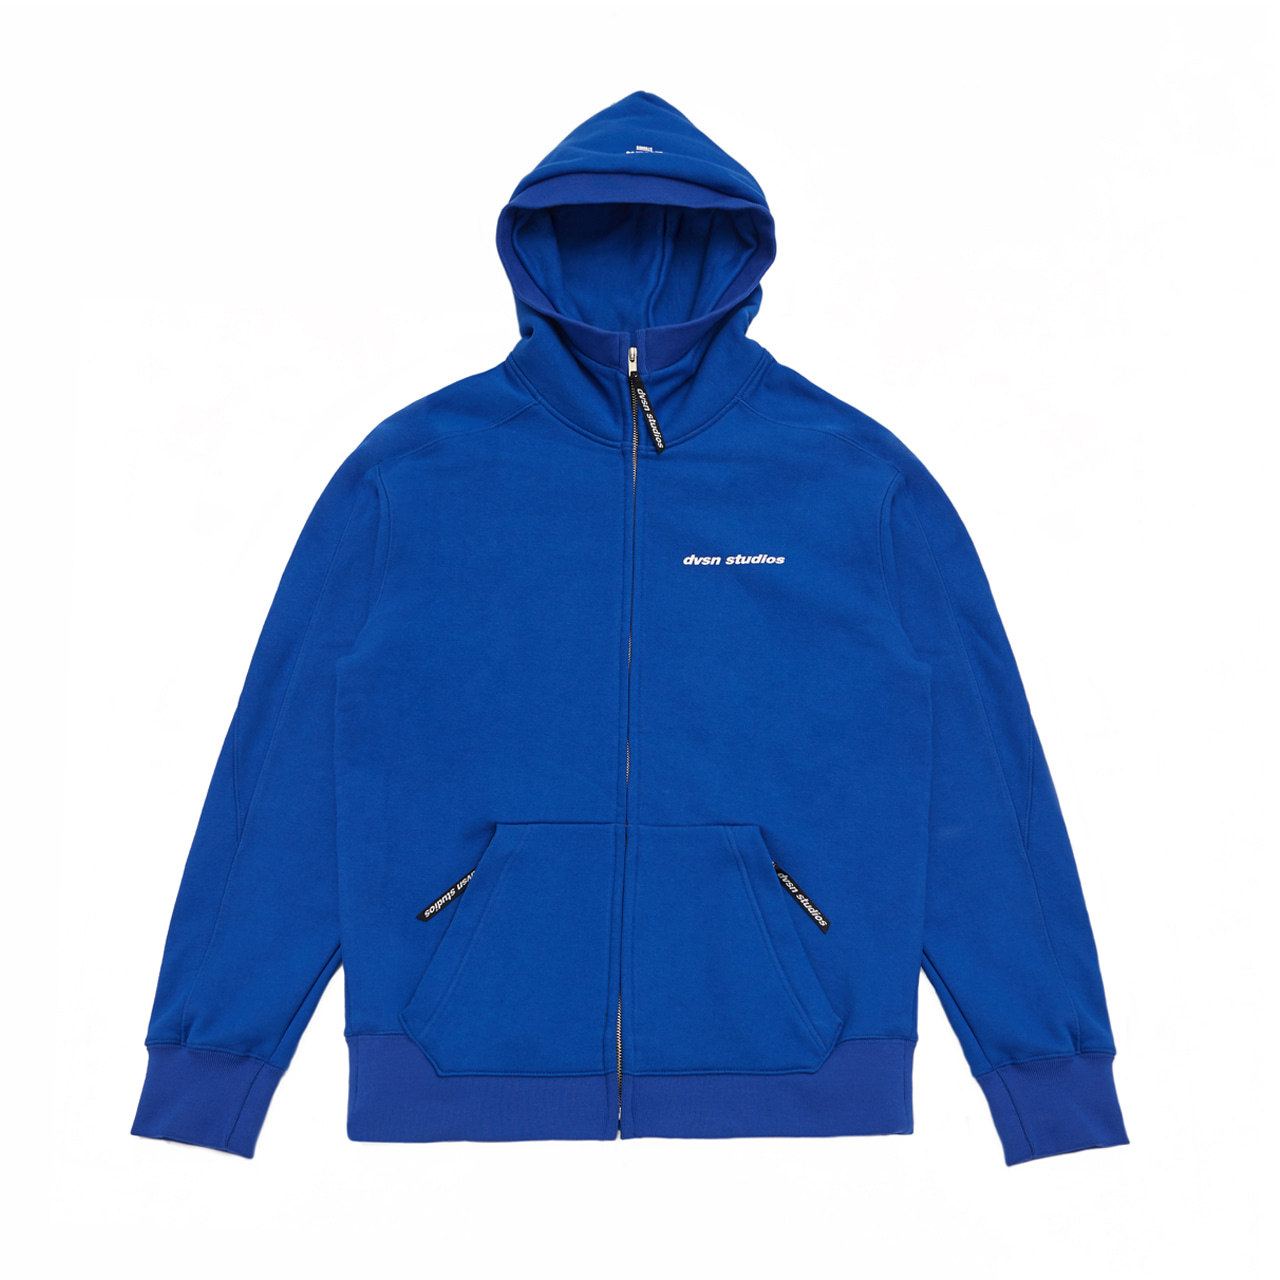 DVSN STUDIOS zip neck hood _ royal blue